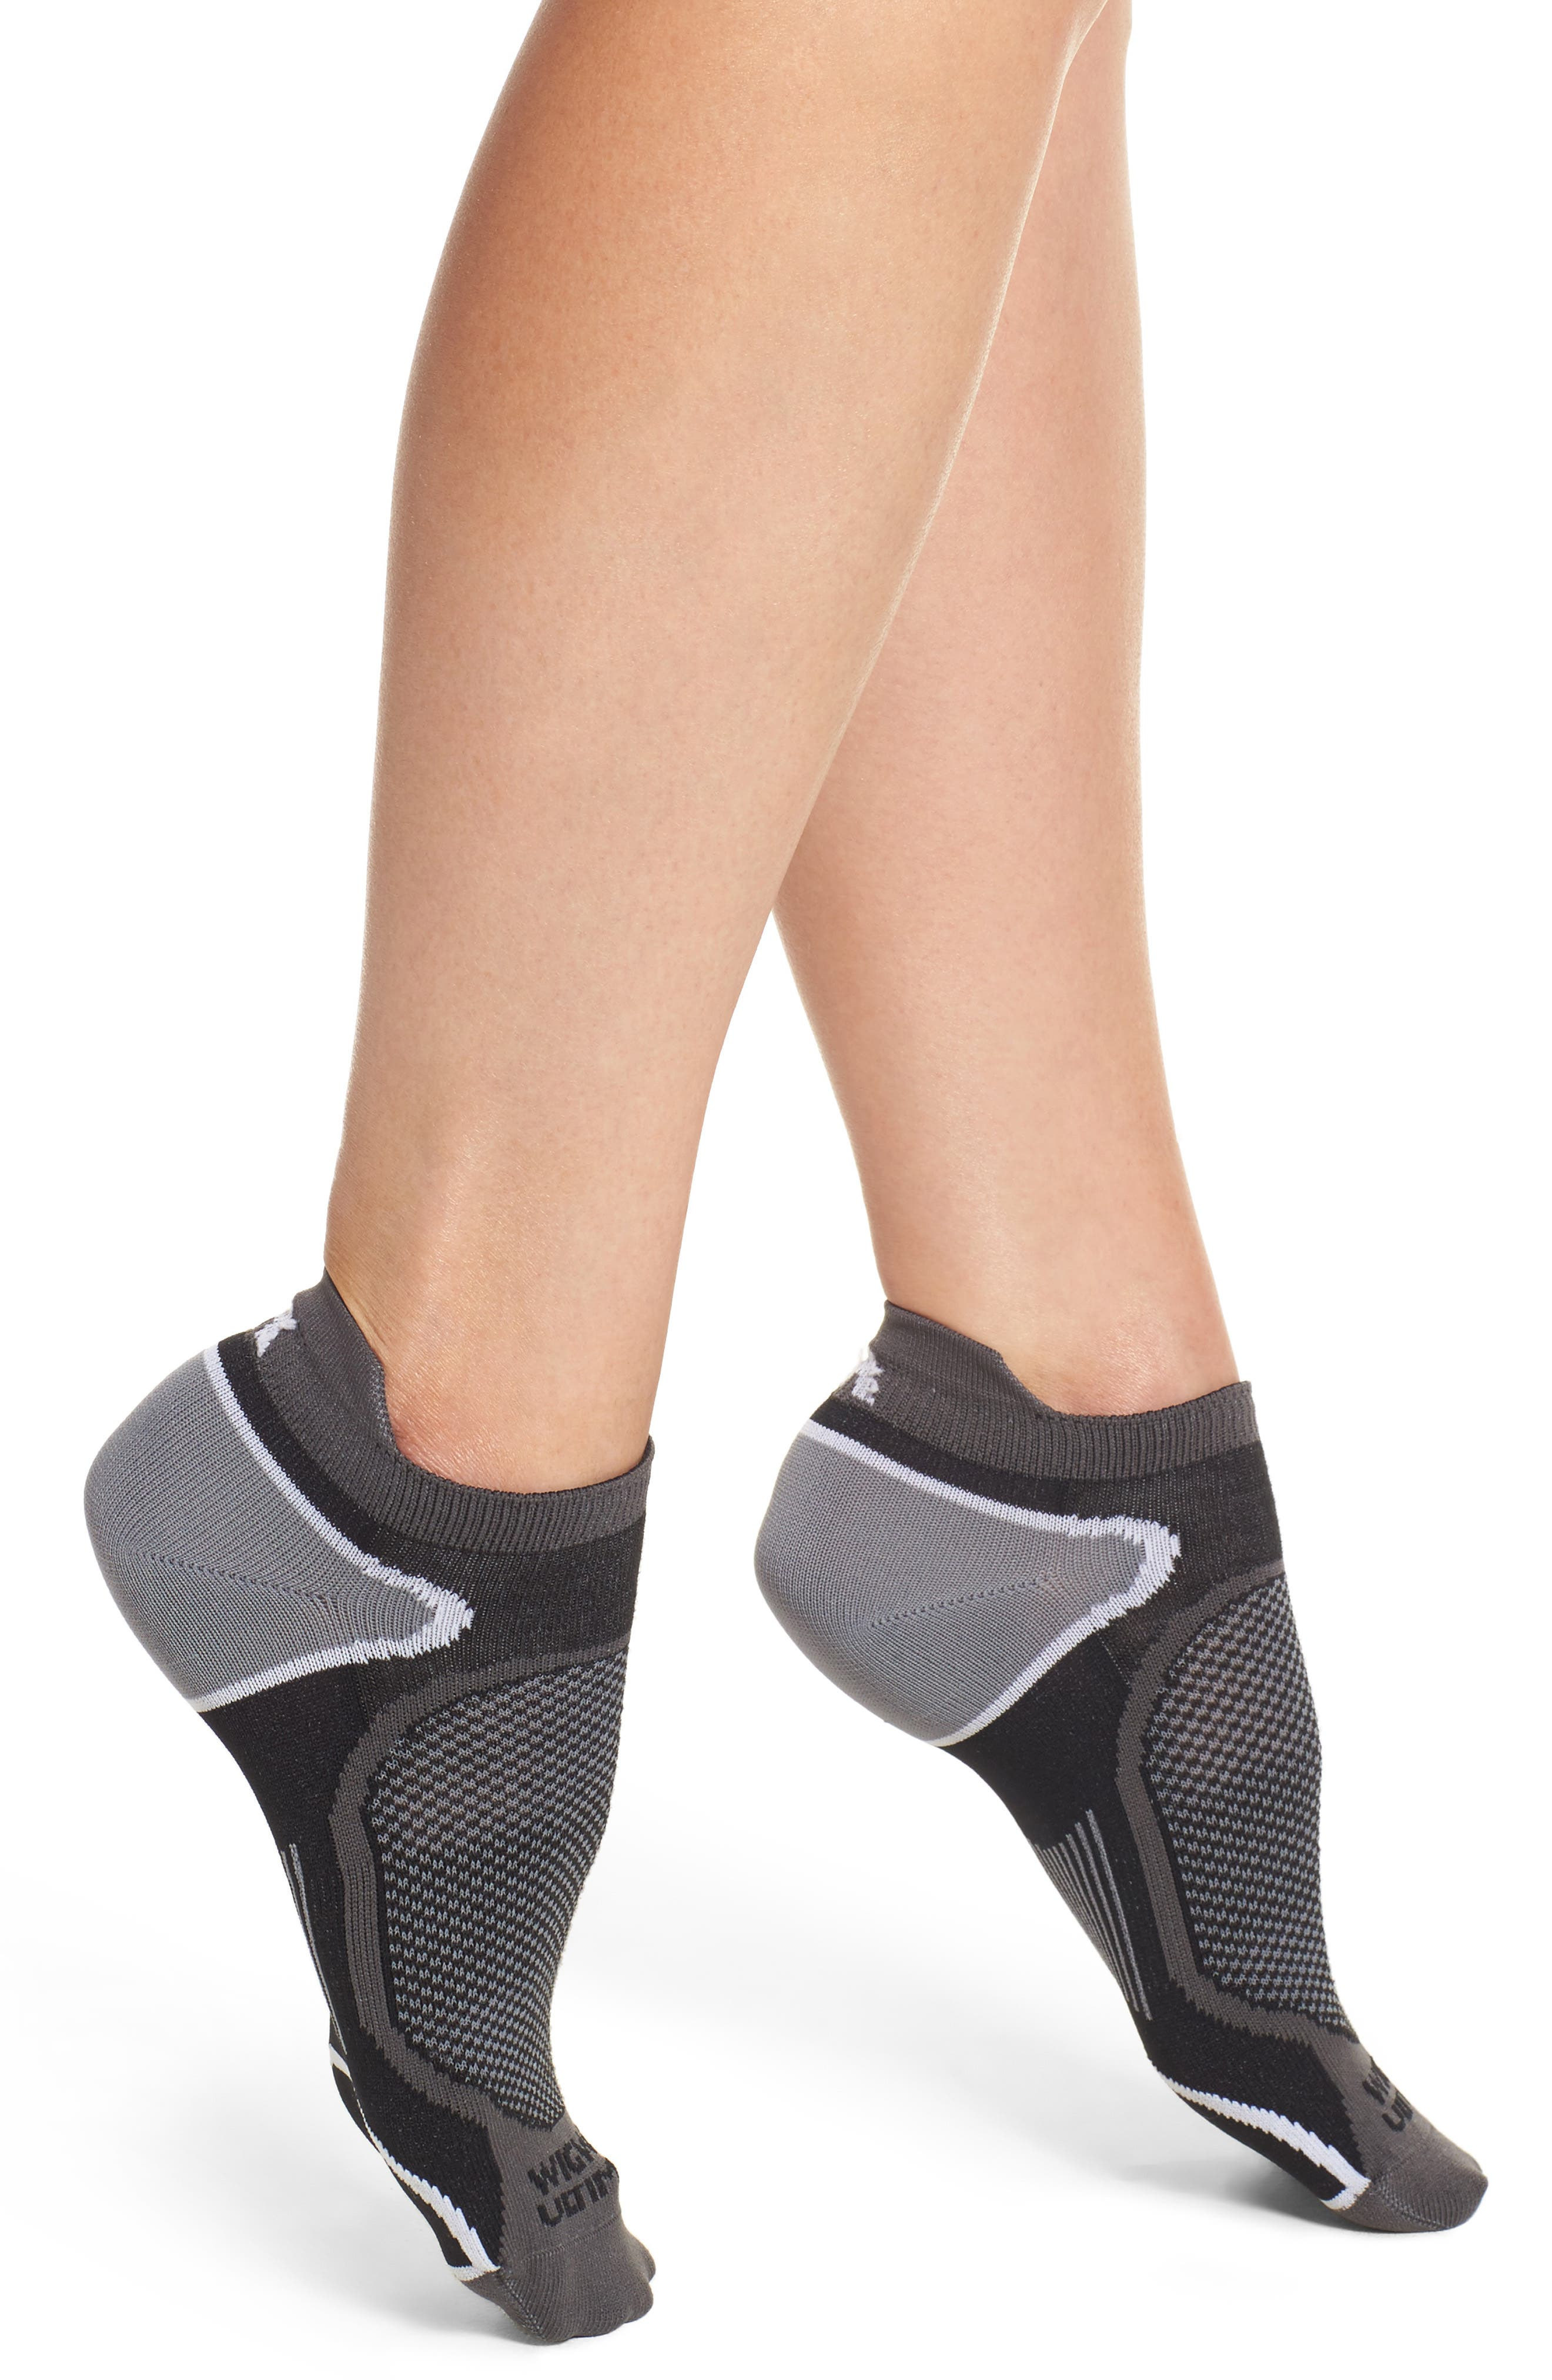 Wigwam Runvious Pro Low Cut Socks